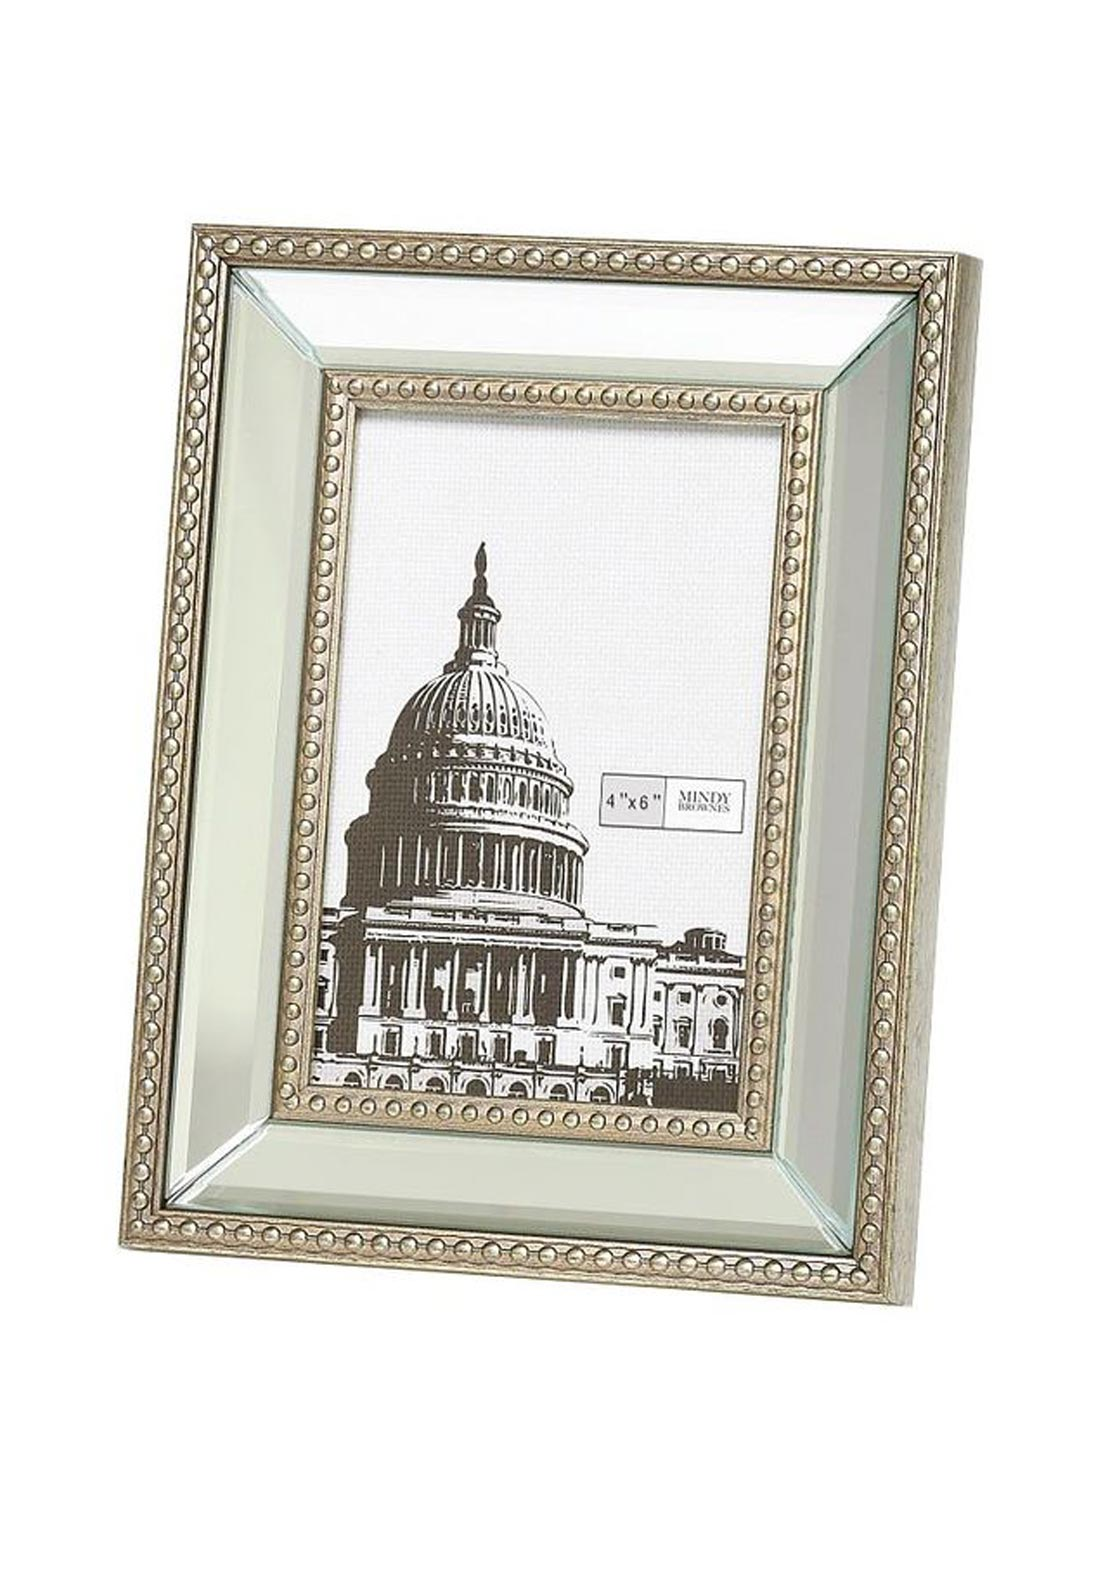 Mindy Brownes Astro Photo Frame, 4 x 6 inches